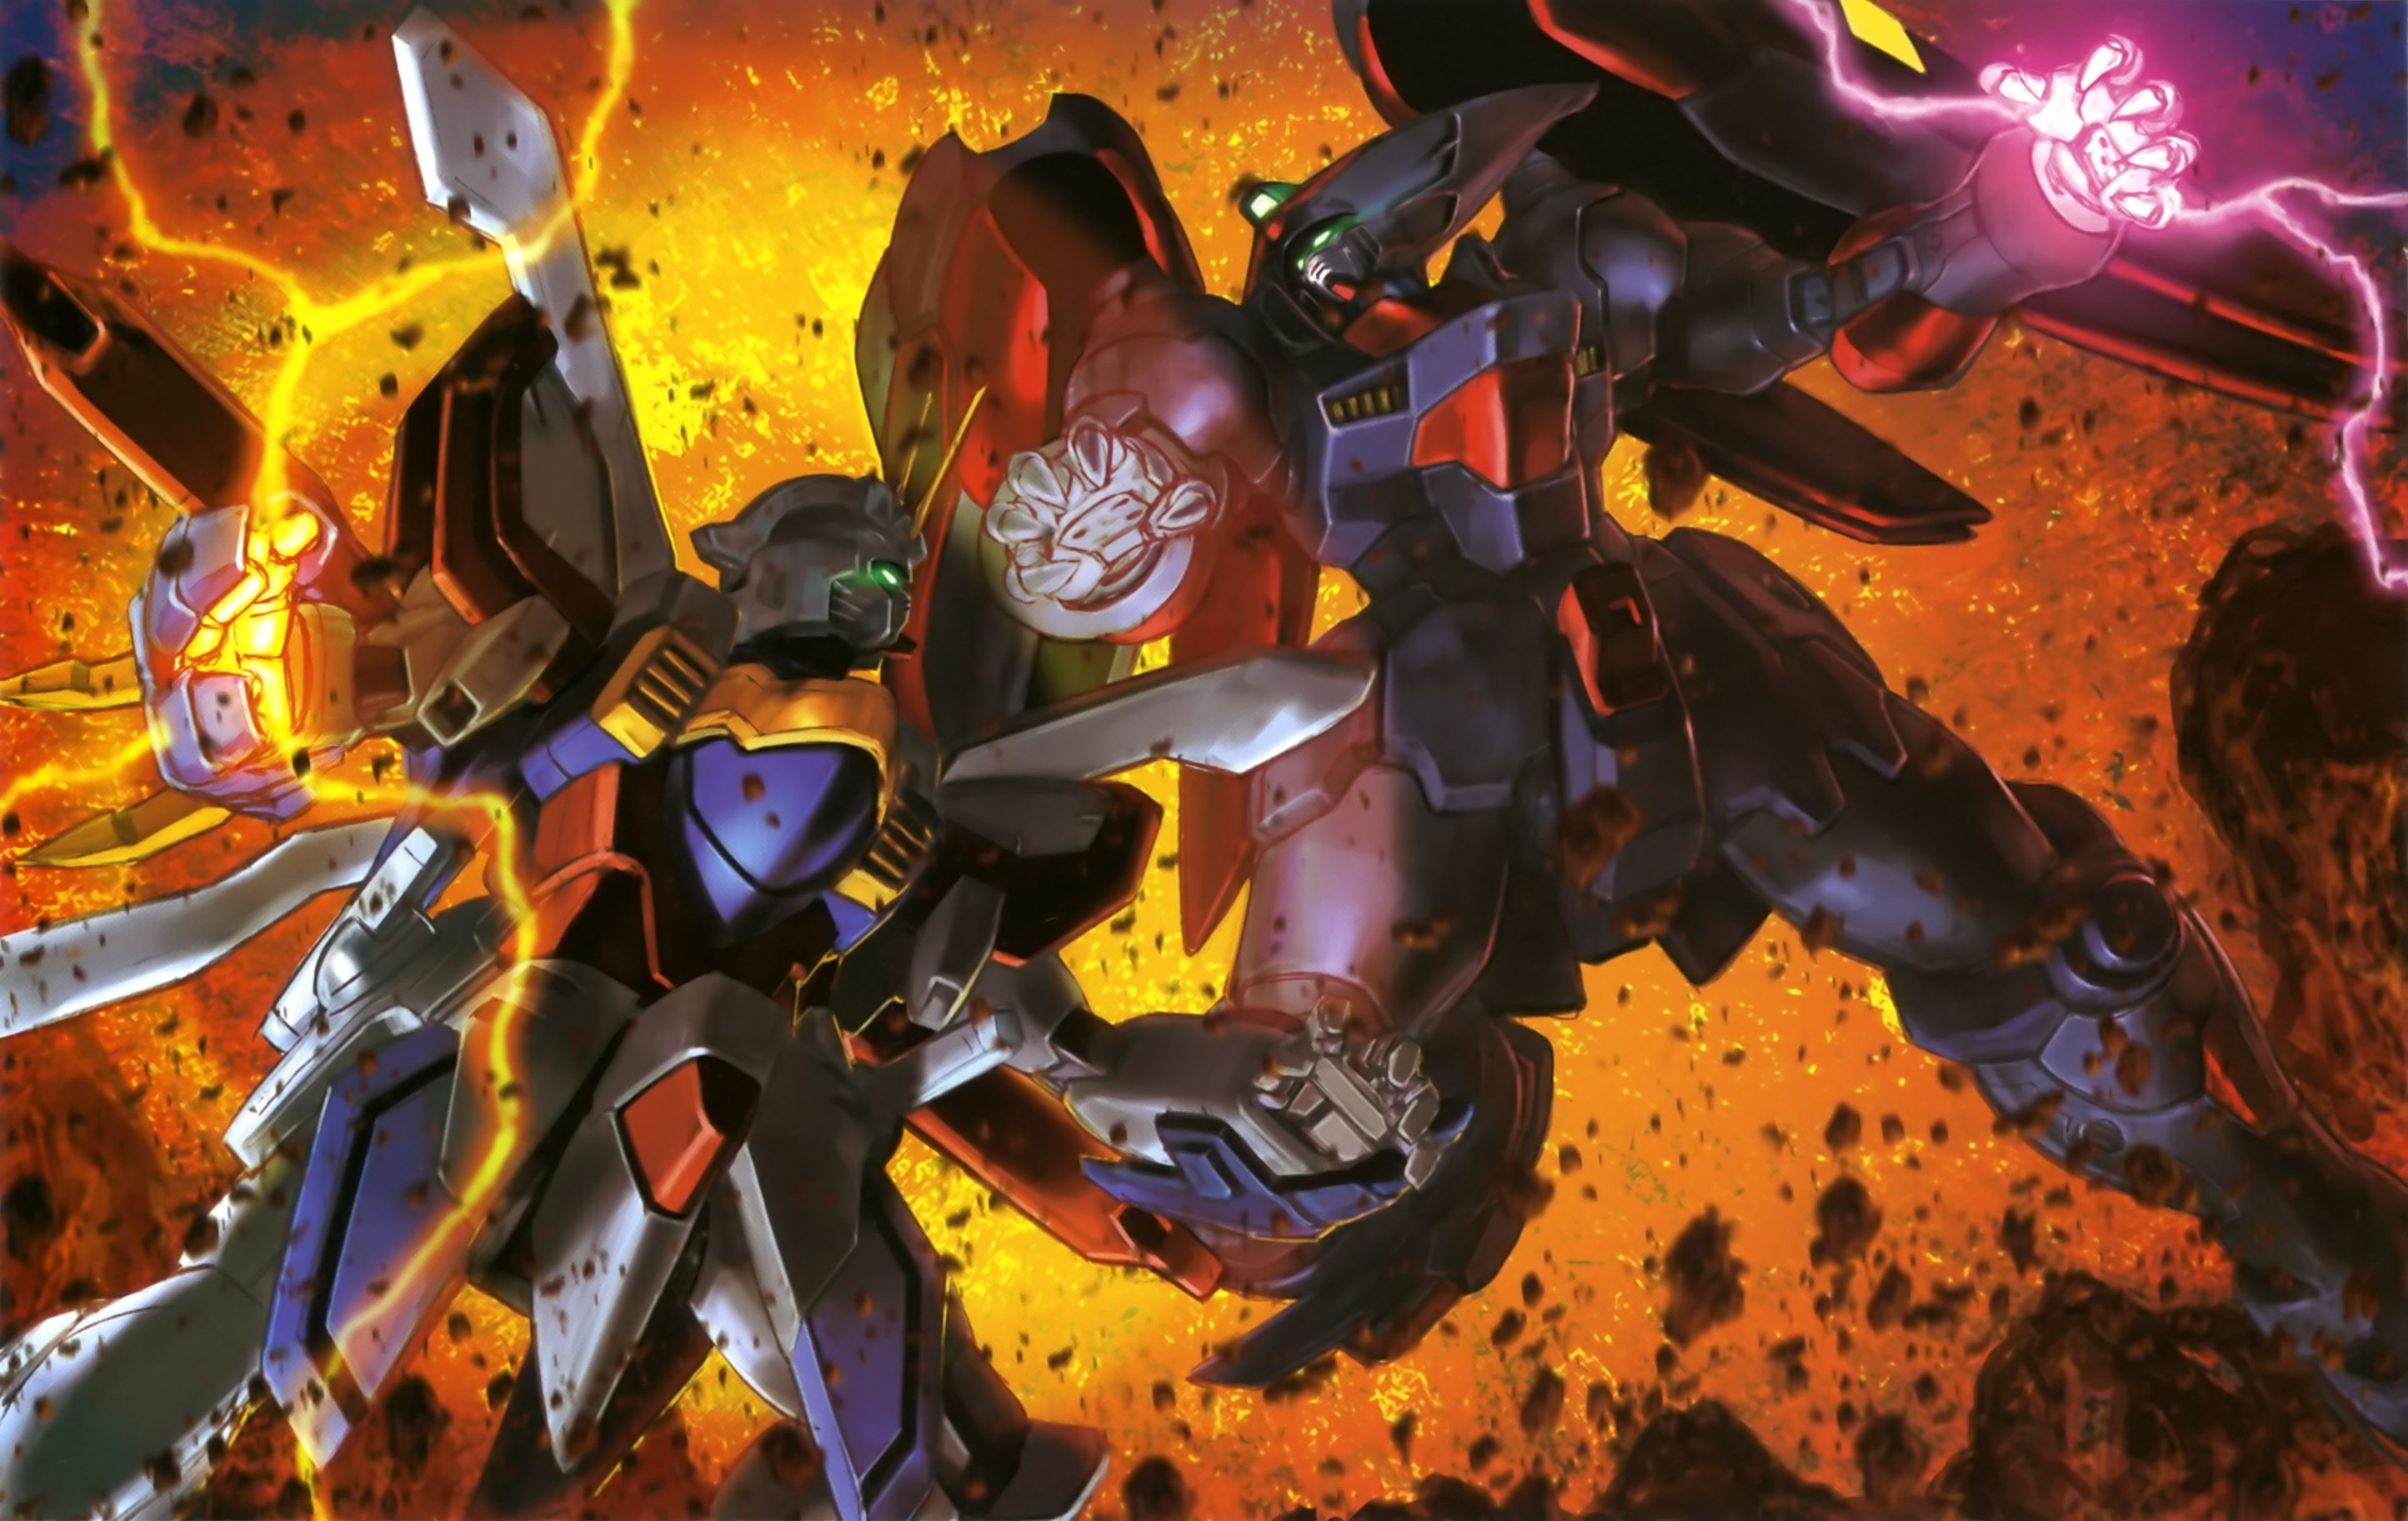 gundam anime wallpaper 1 gundam wing anime wallpaper 00 gundam 7s 2889x1825